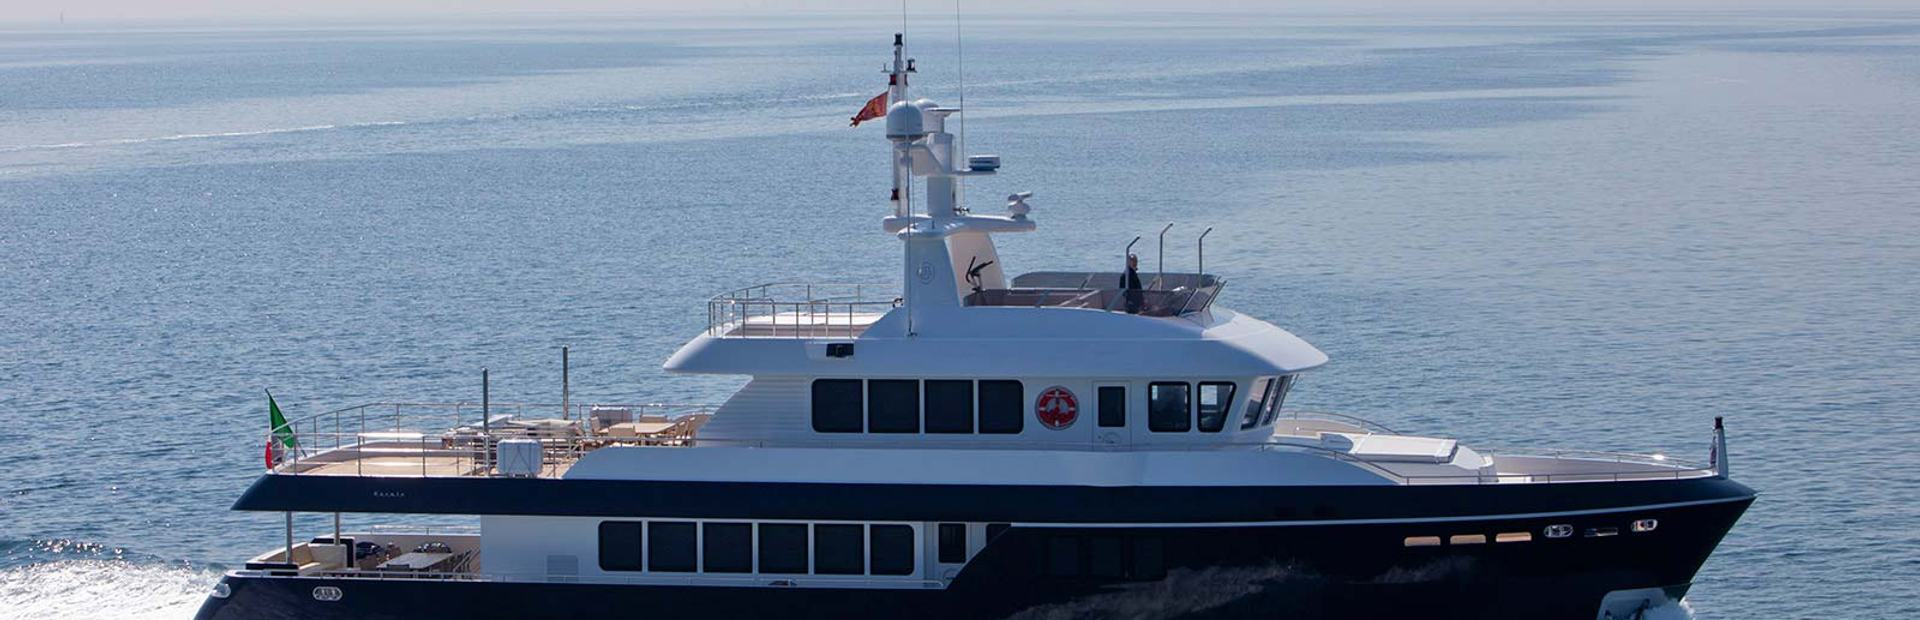 Cantiere Delle Marche Darwin 96 Yacht Charter